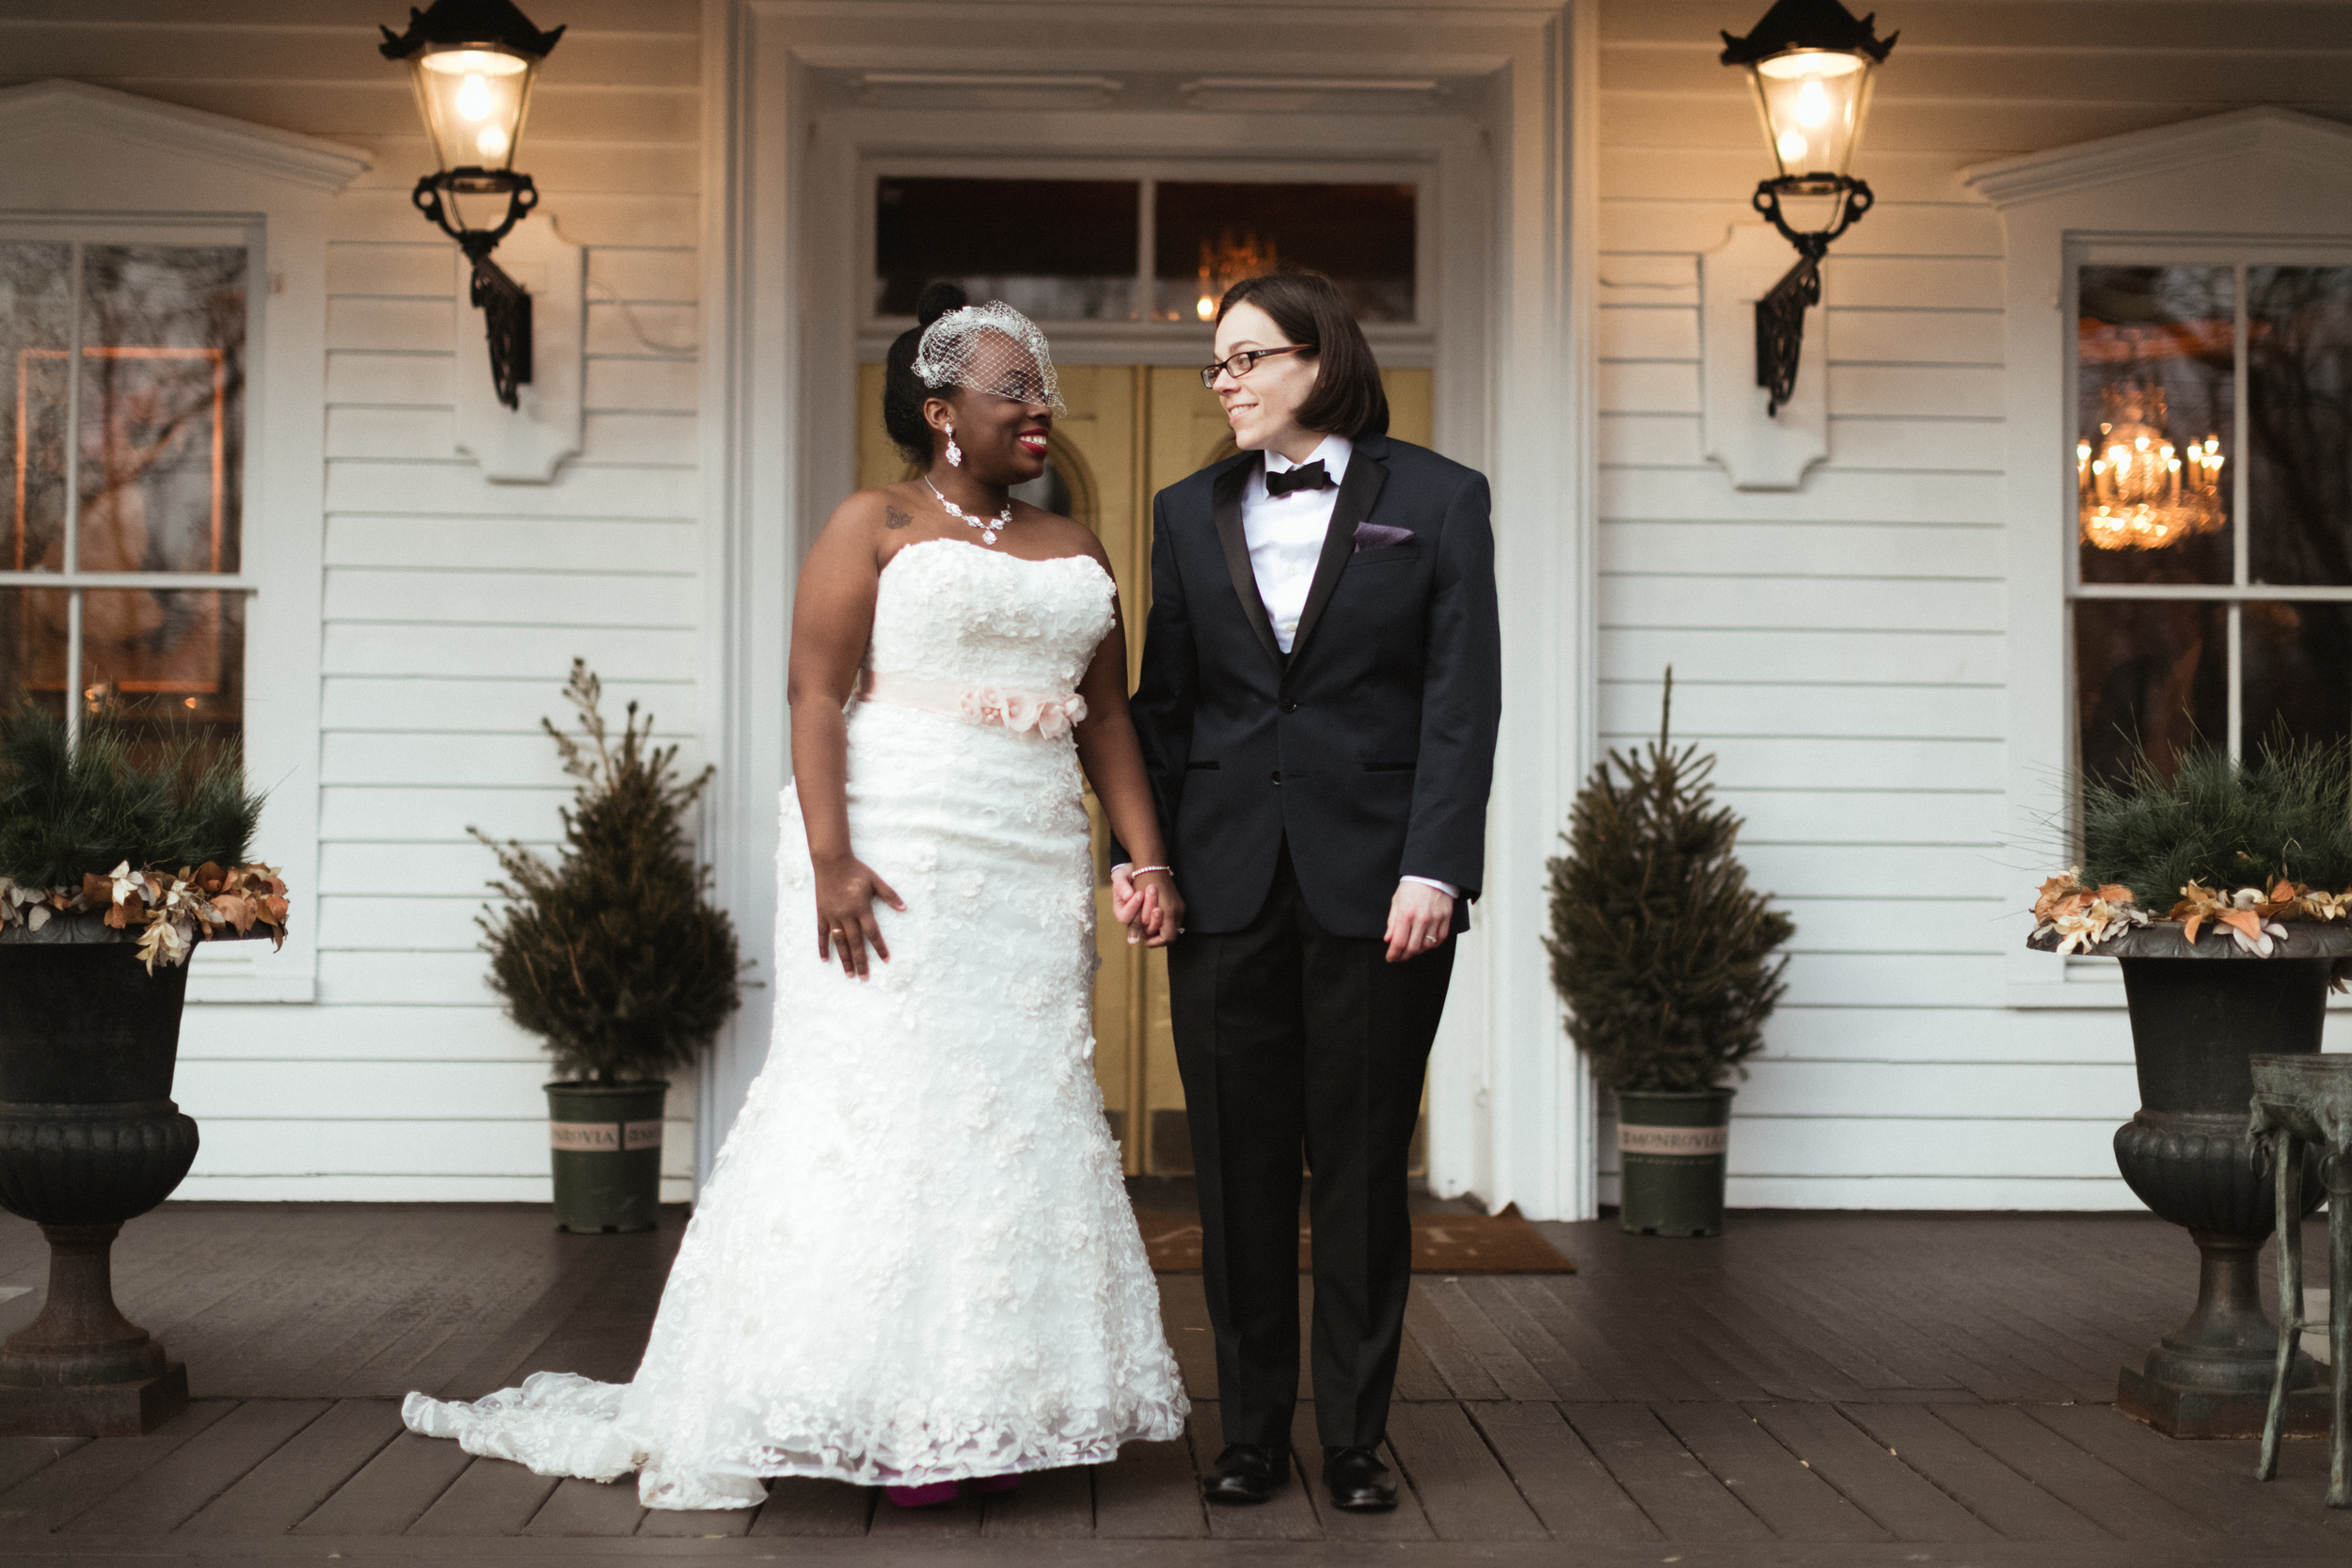 Ash Carr Wedding Photography New York couple smiling at each other